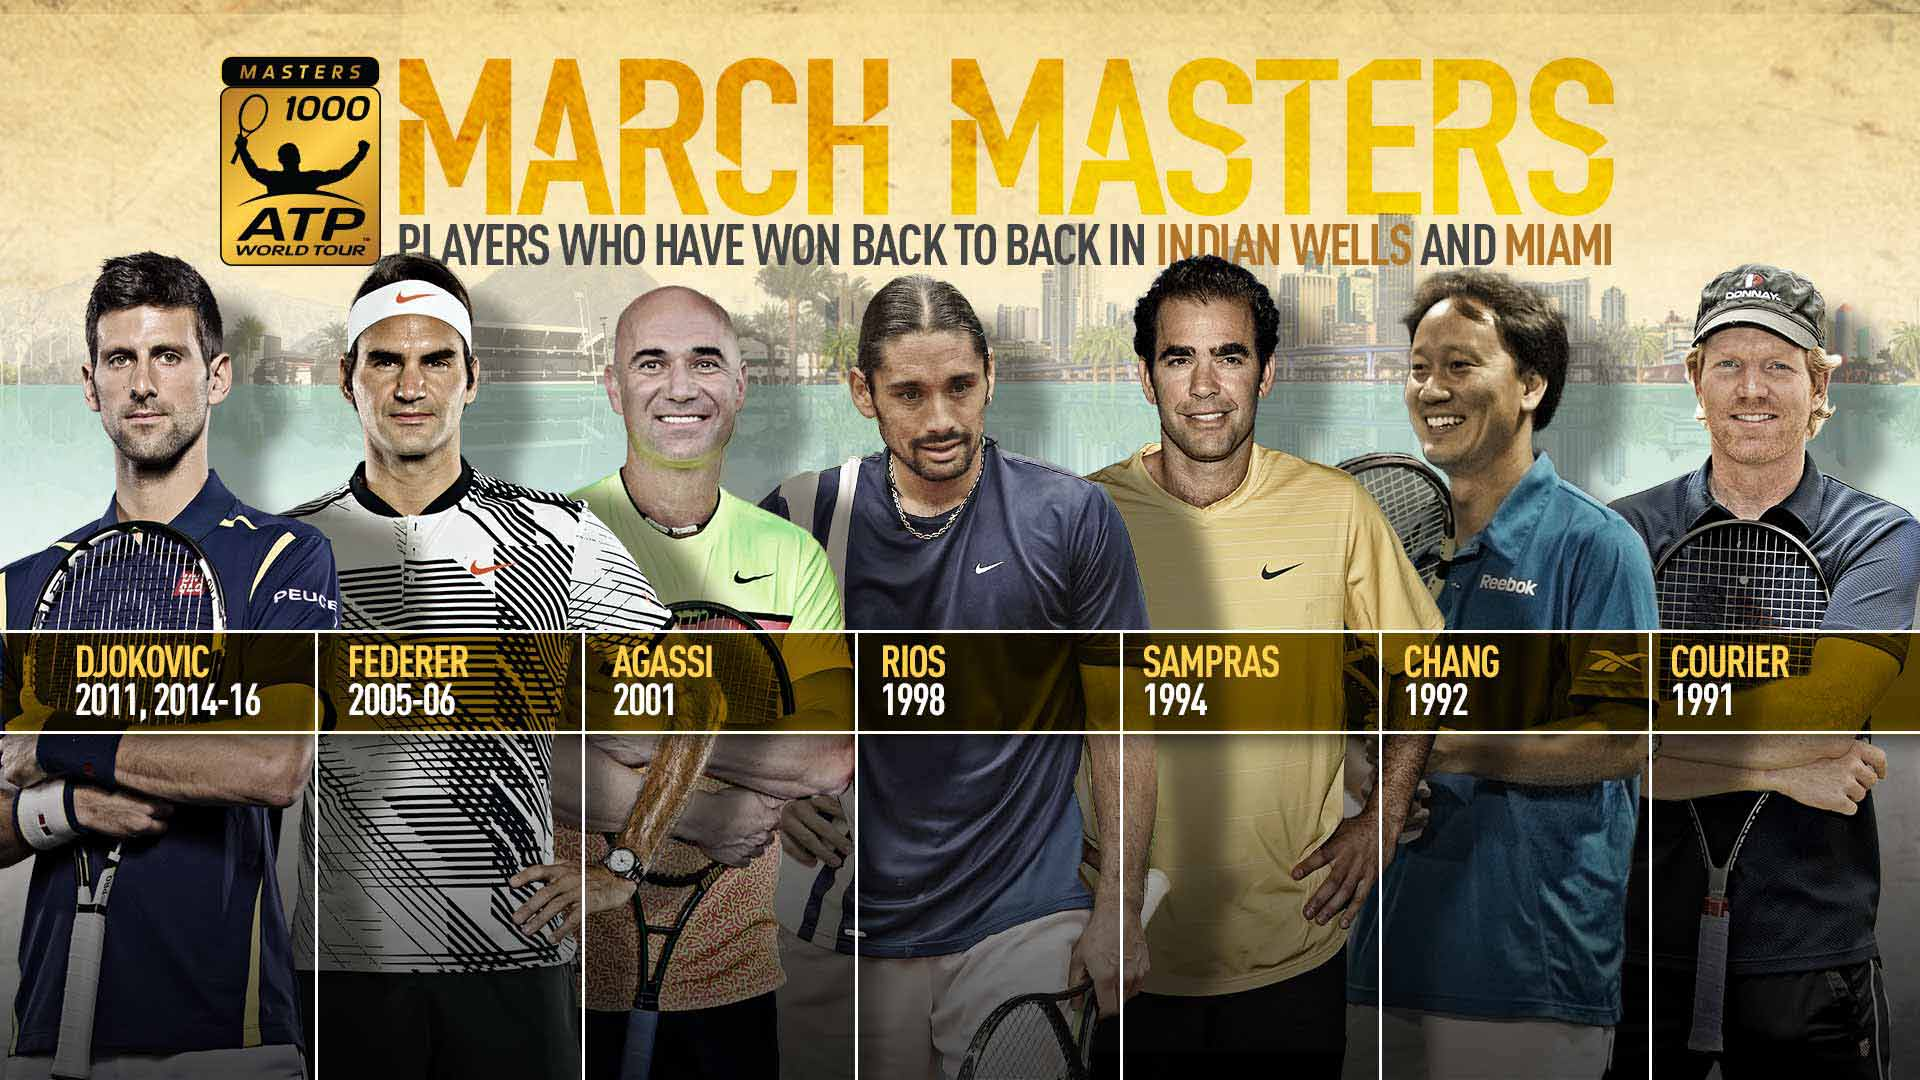 March Masters